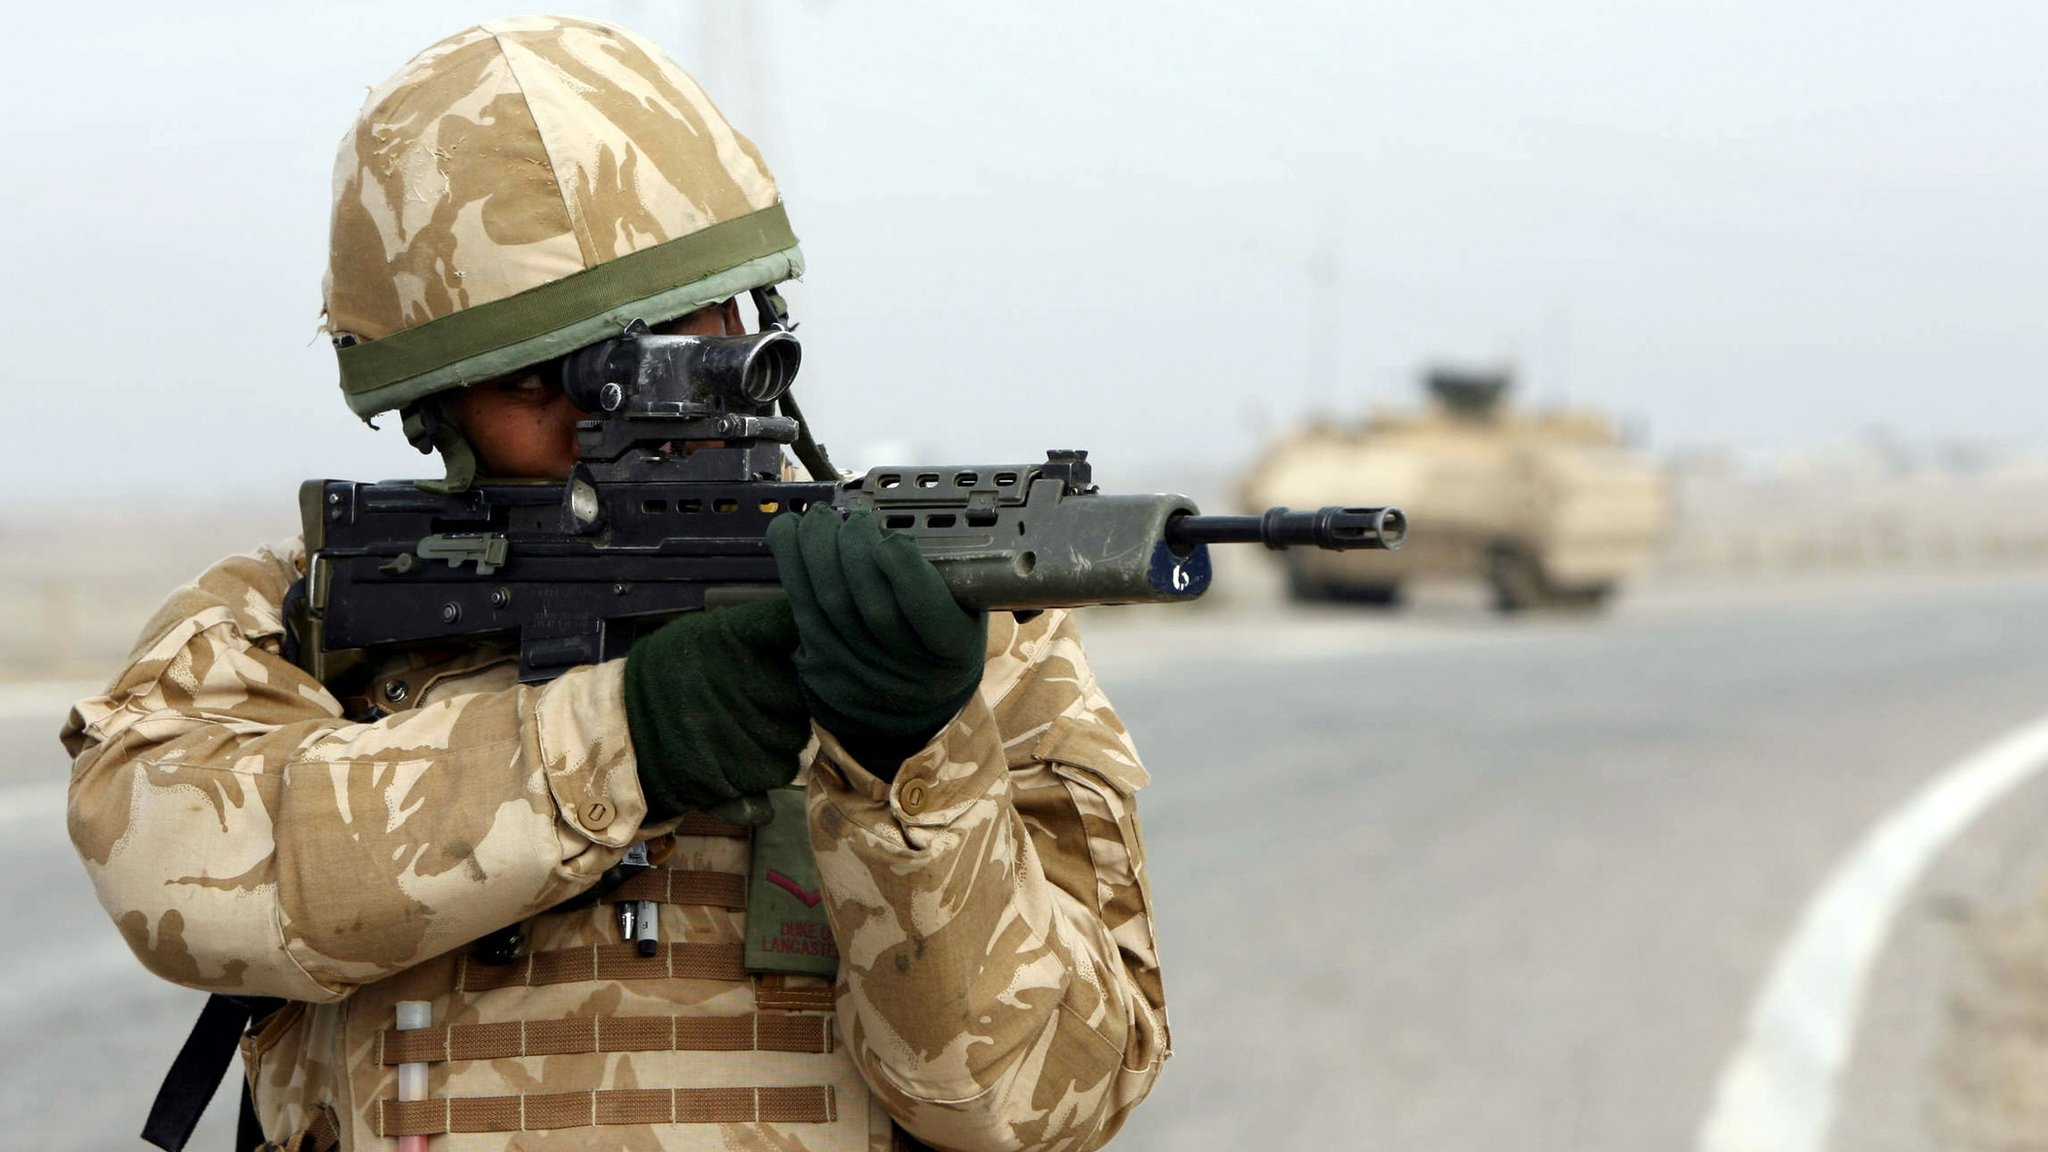 Iraq War: Lawyer admits misconduct over Army abuse claims